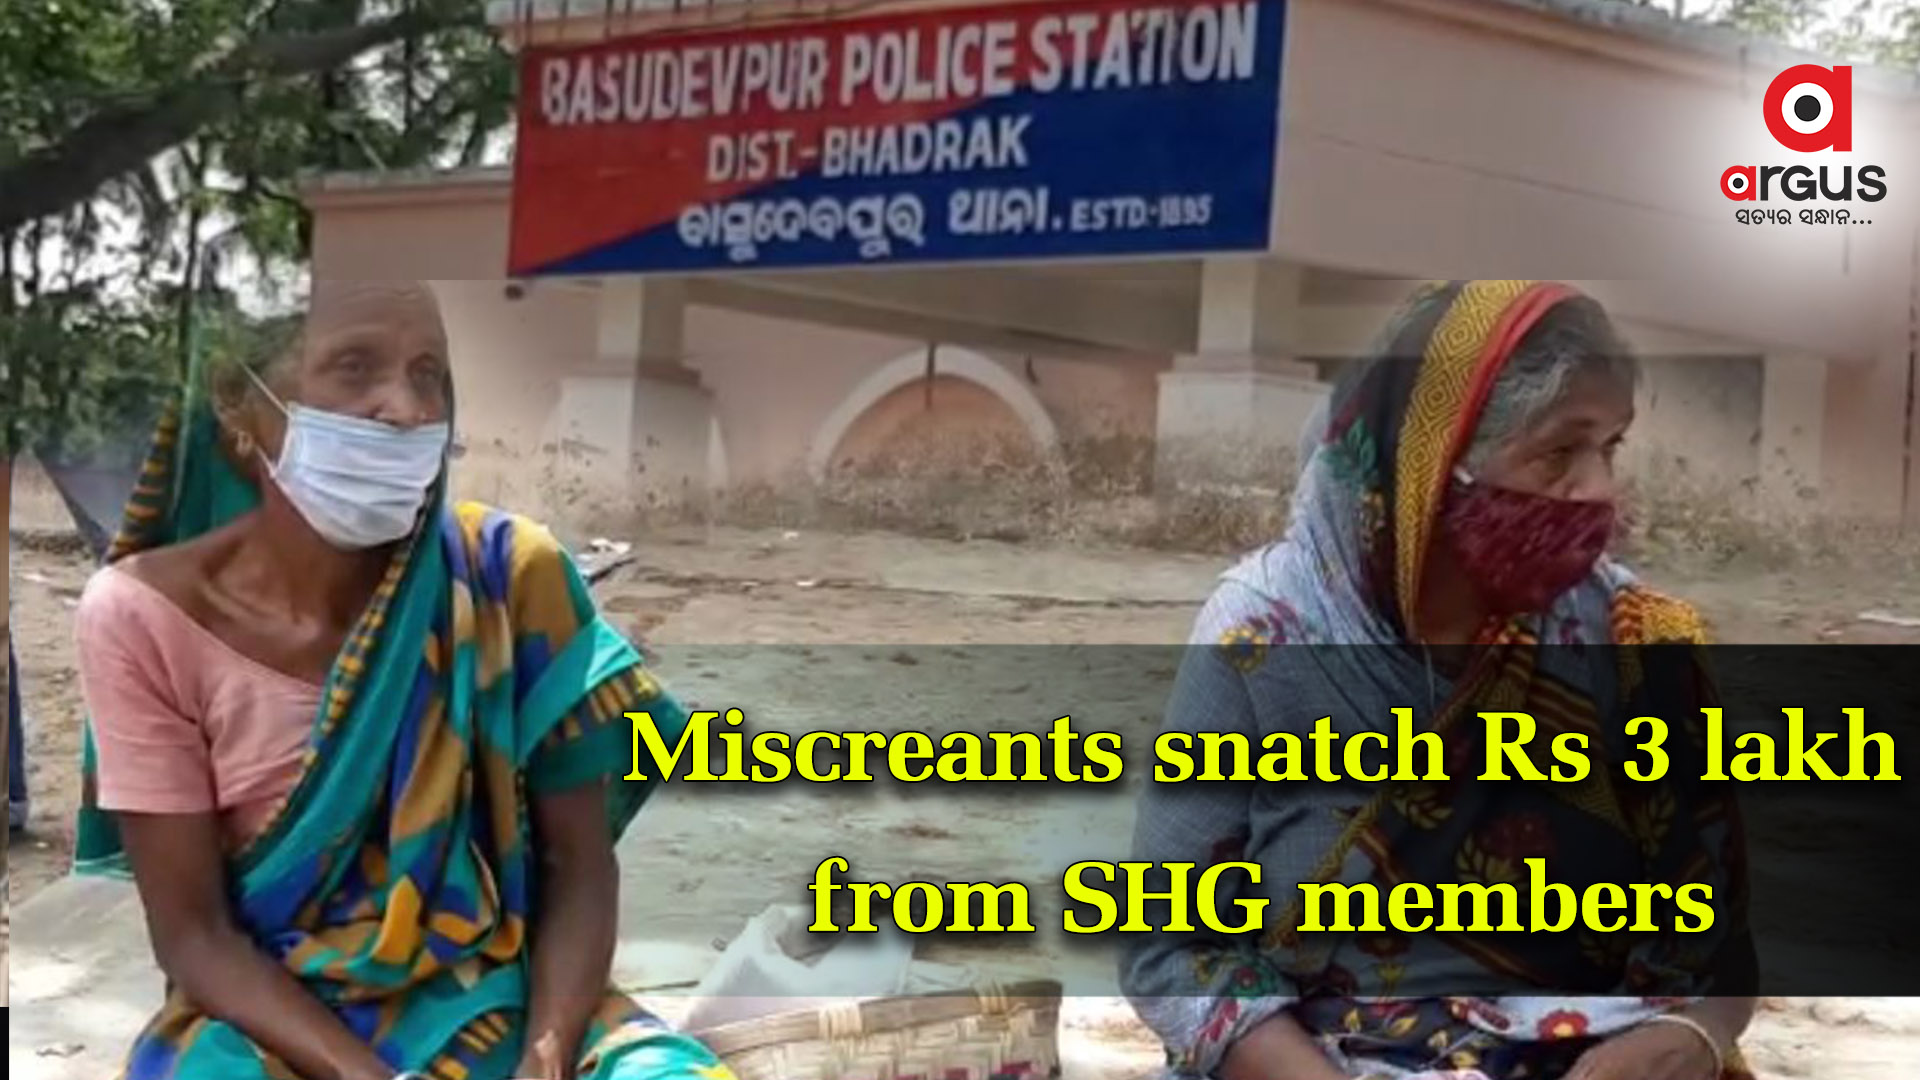 Miscreants snatch Rs 3 lakh from SHG members in Bhadrak